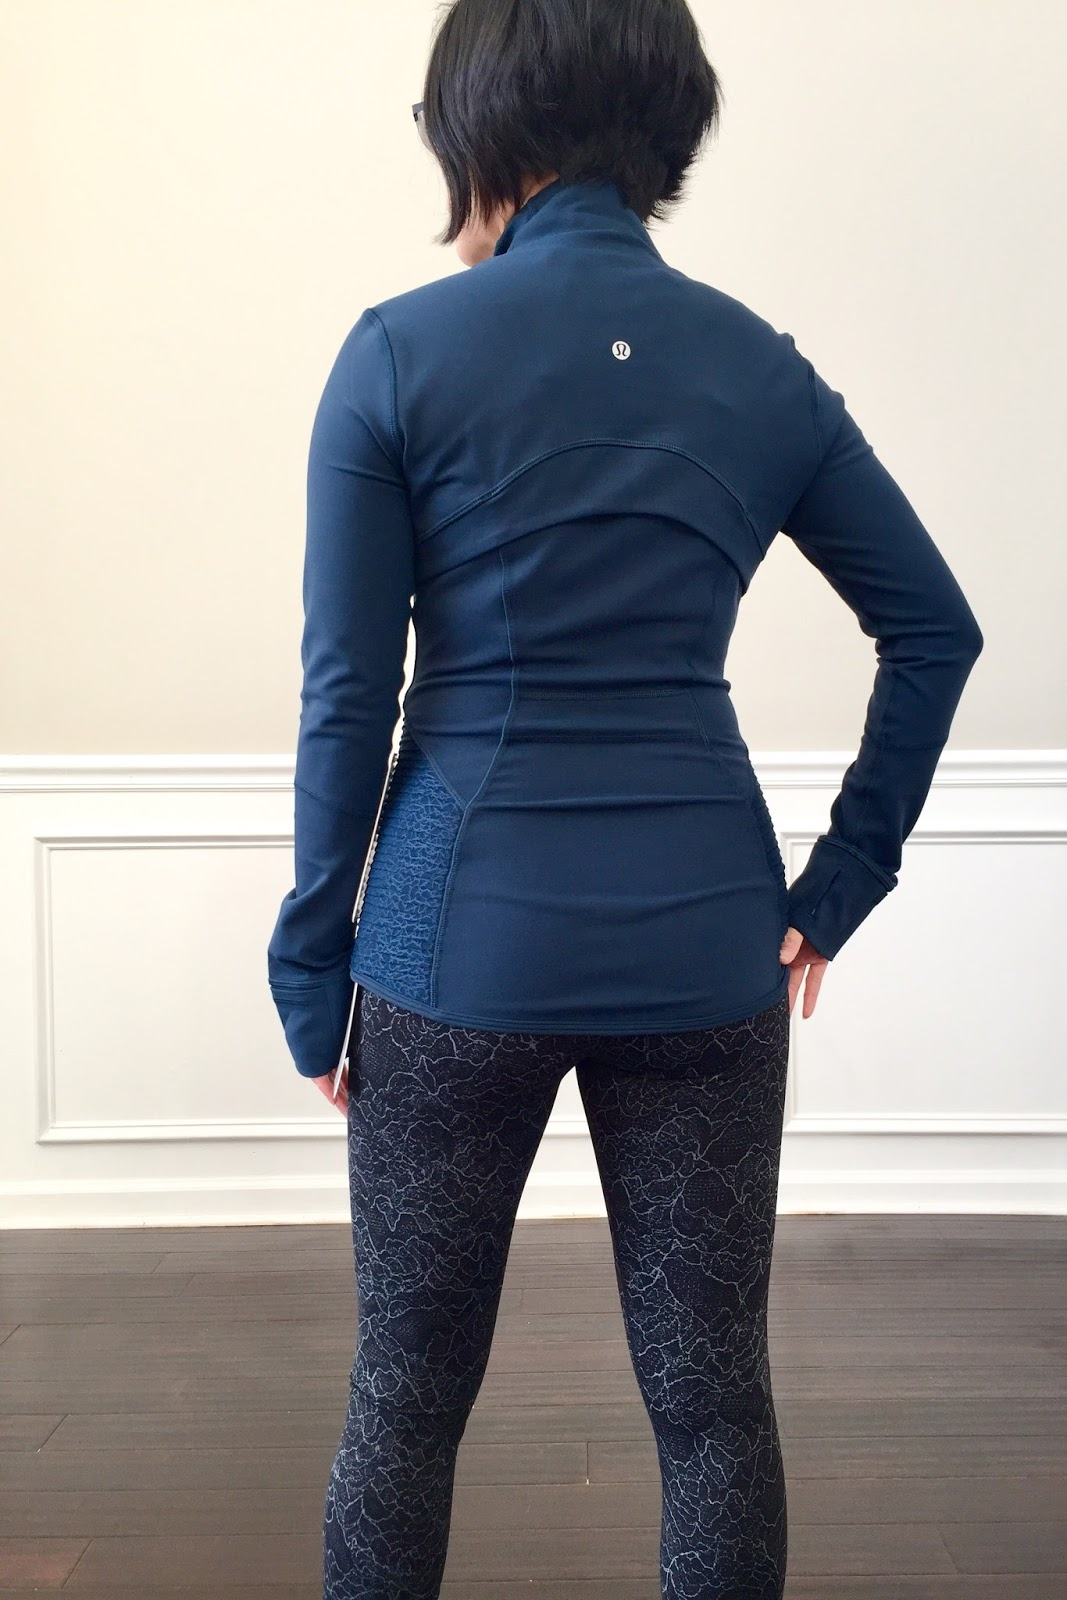 ab58126ac3 Jaded is a very deep, dark, and saturated blue. The color is absolutely  beautiful. The fit is the same as all my other Define Jackets and true to  size.